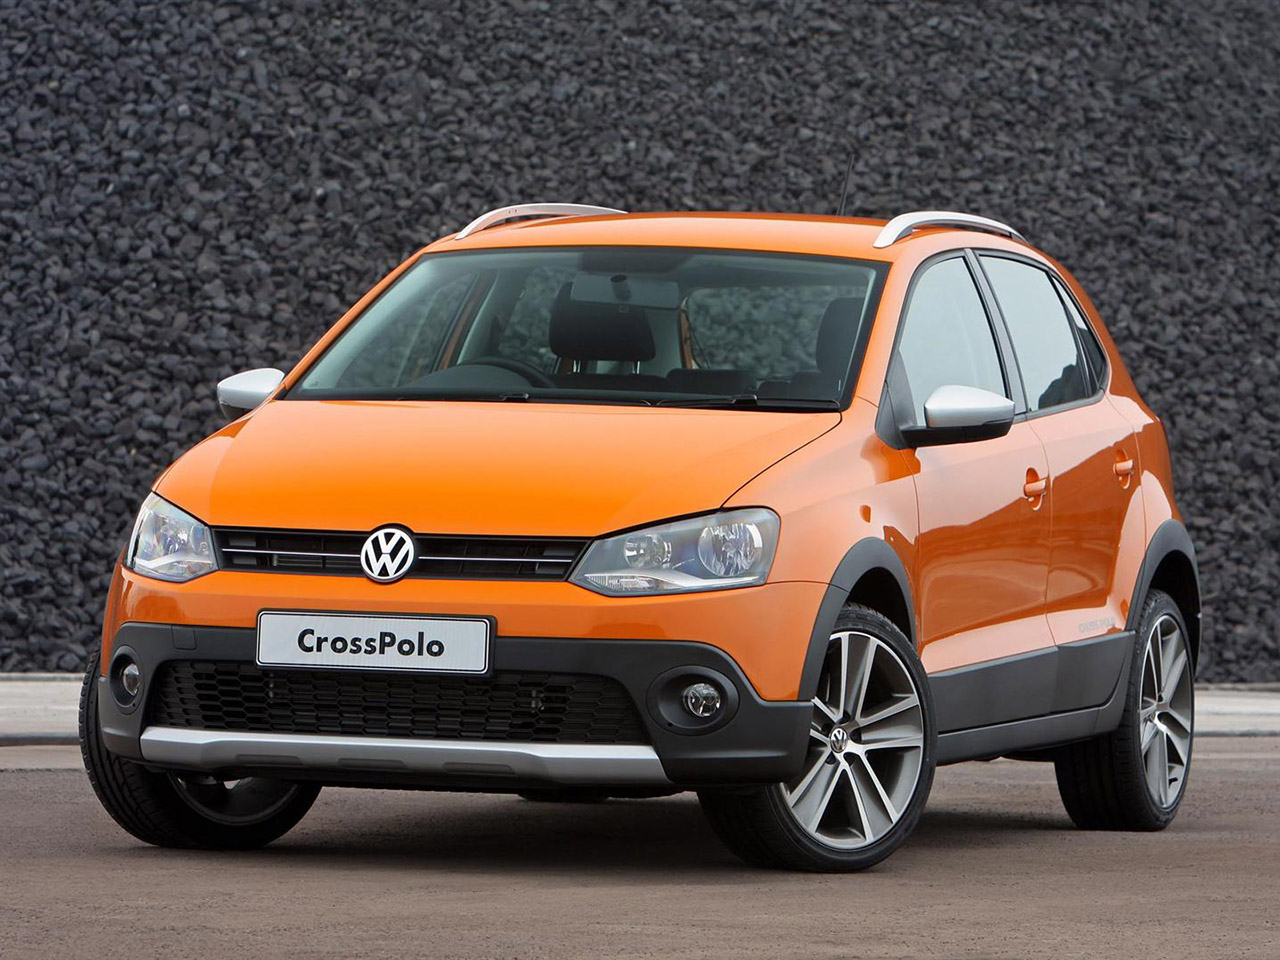 volkswagen cross polo 2010 volkswagen cross polo 2010 photo 15 car in pictures car photo gallery. Black Bedroom Furniture Sets. Home Design Ideas